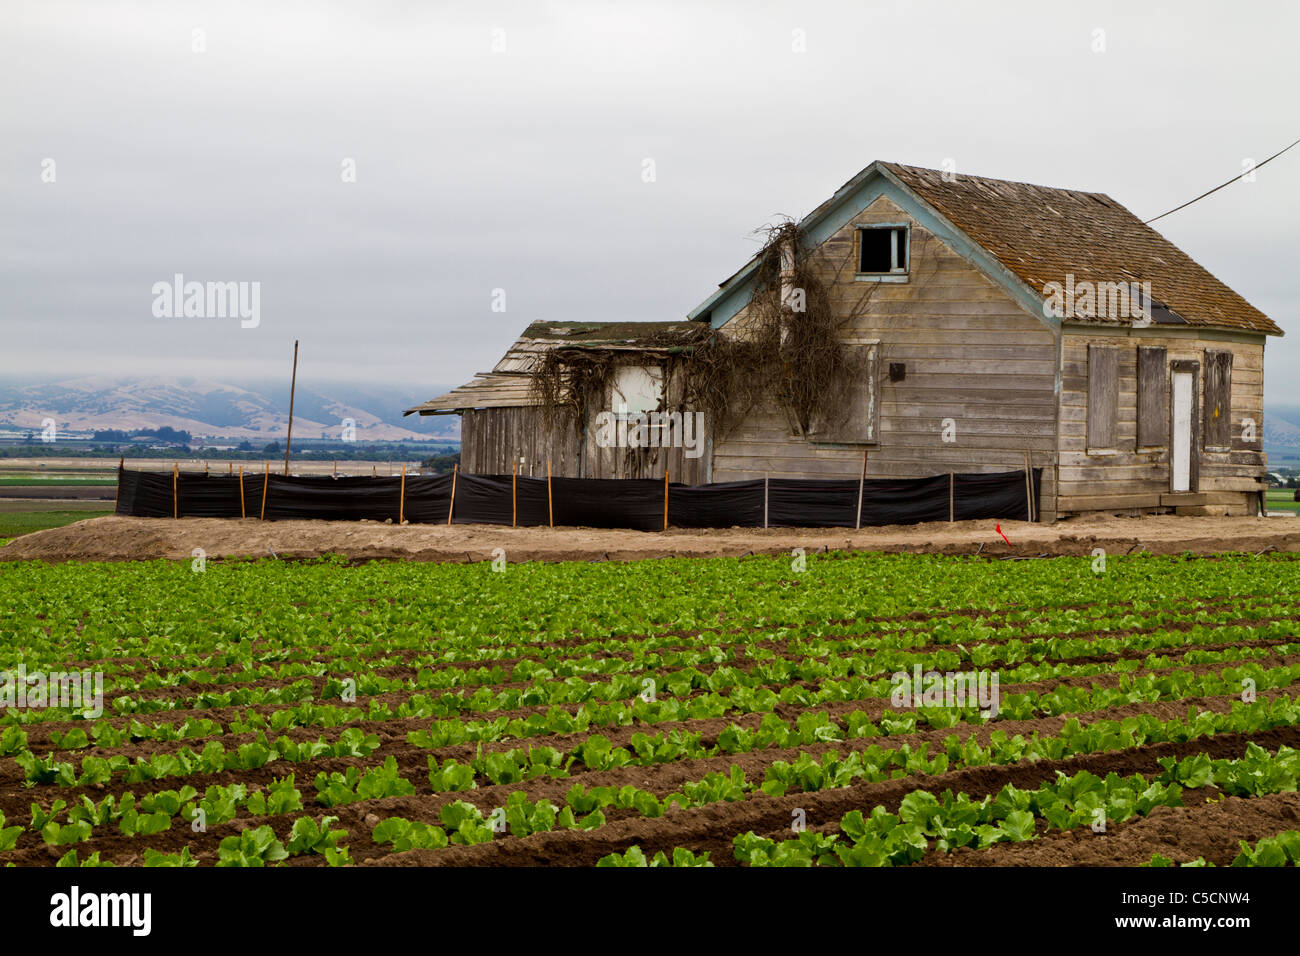 Old Abandoned Farmhouse And Lettuce Crops In Salinas California USA